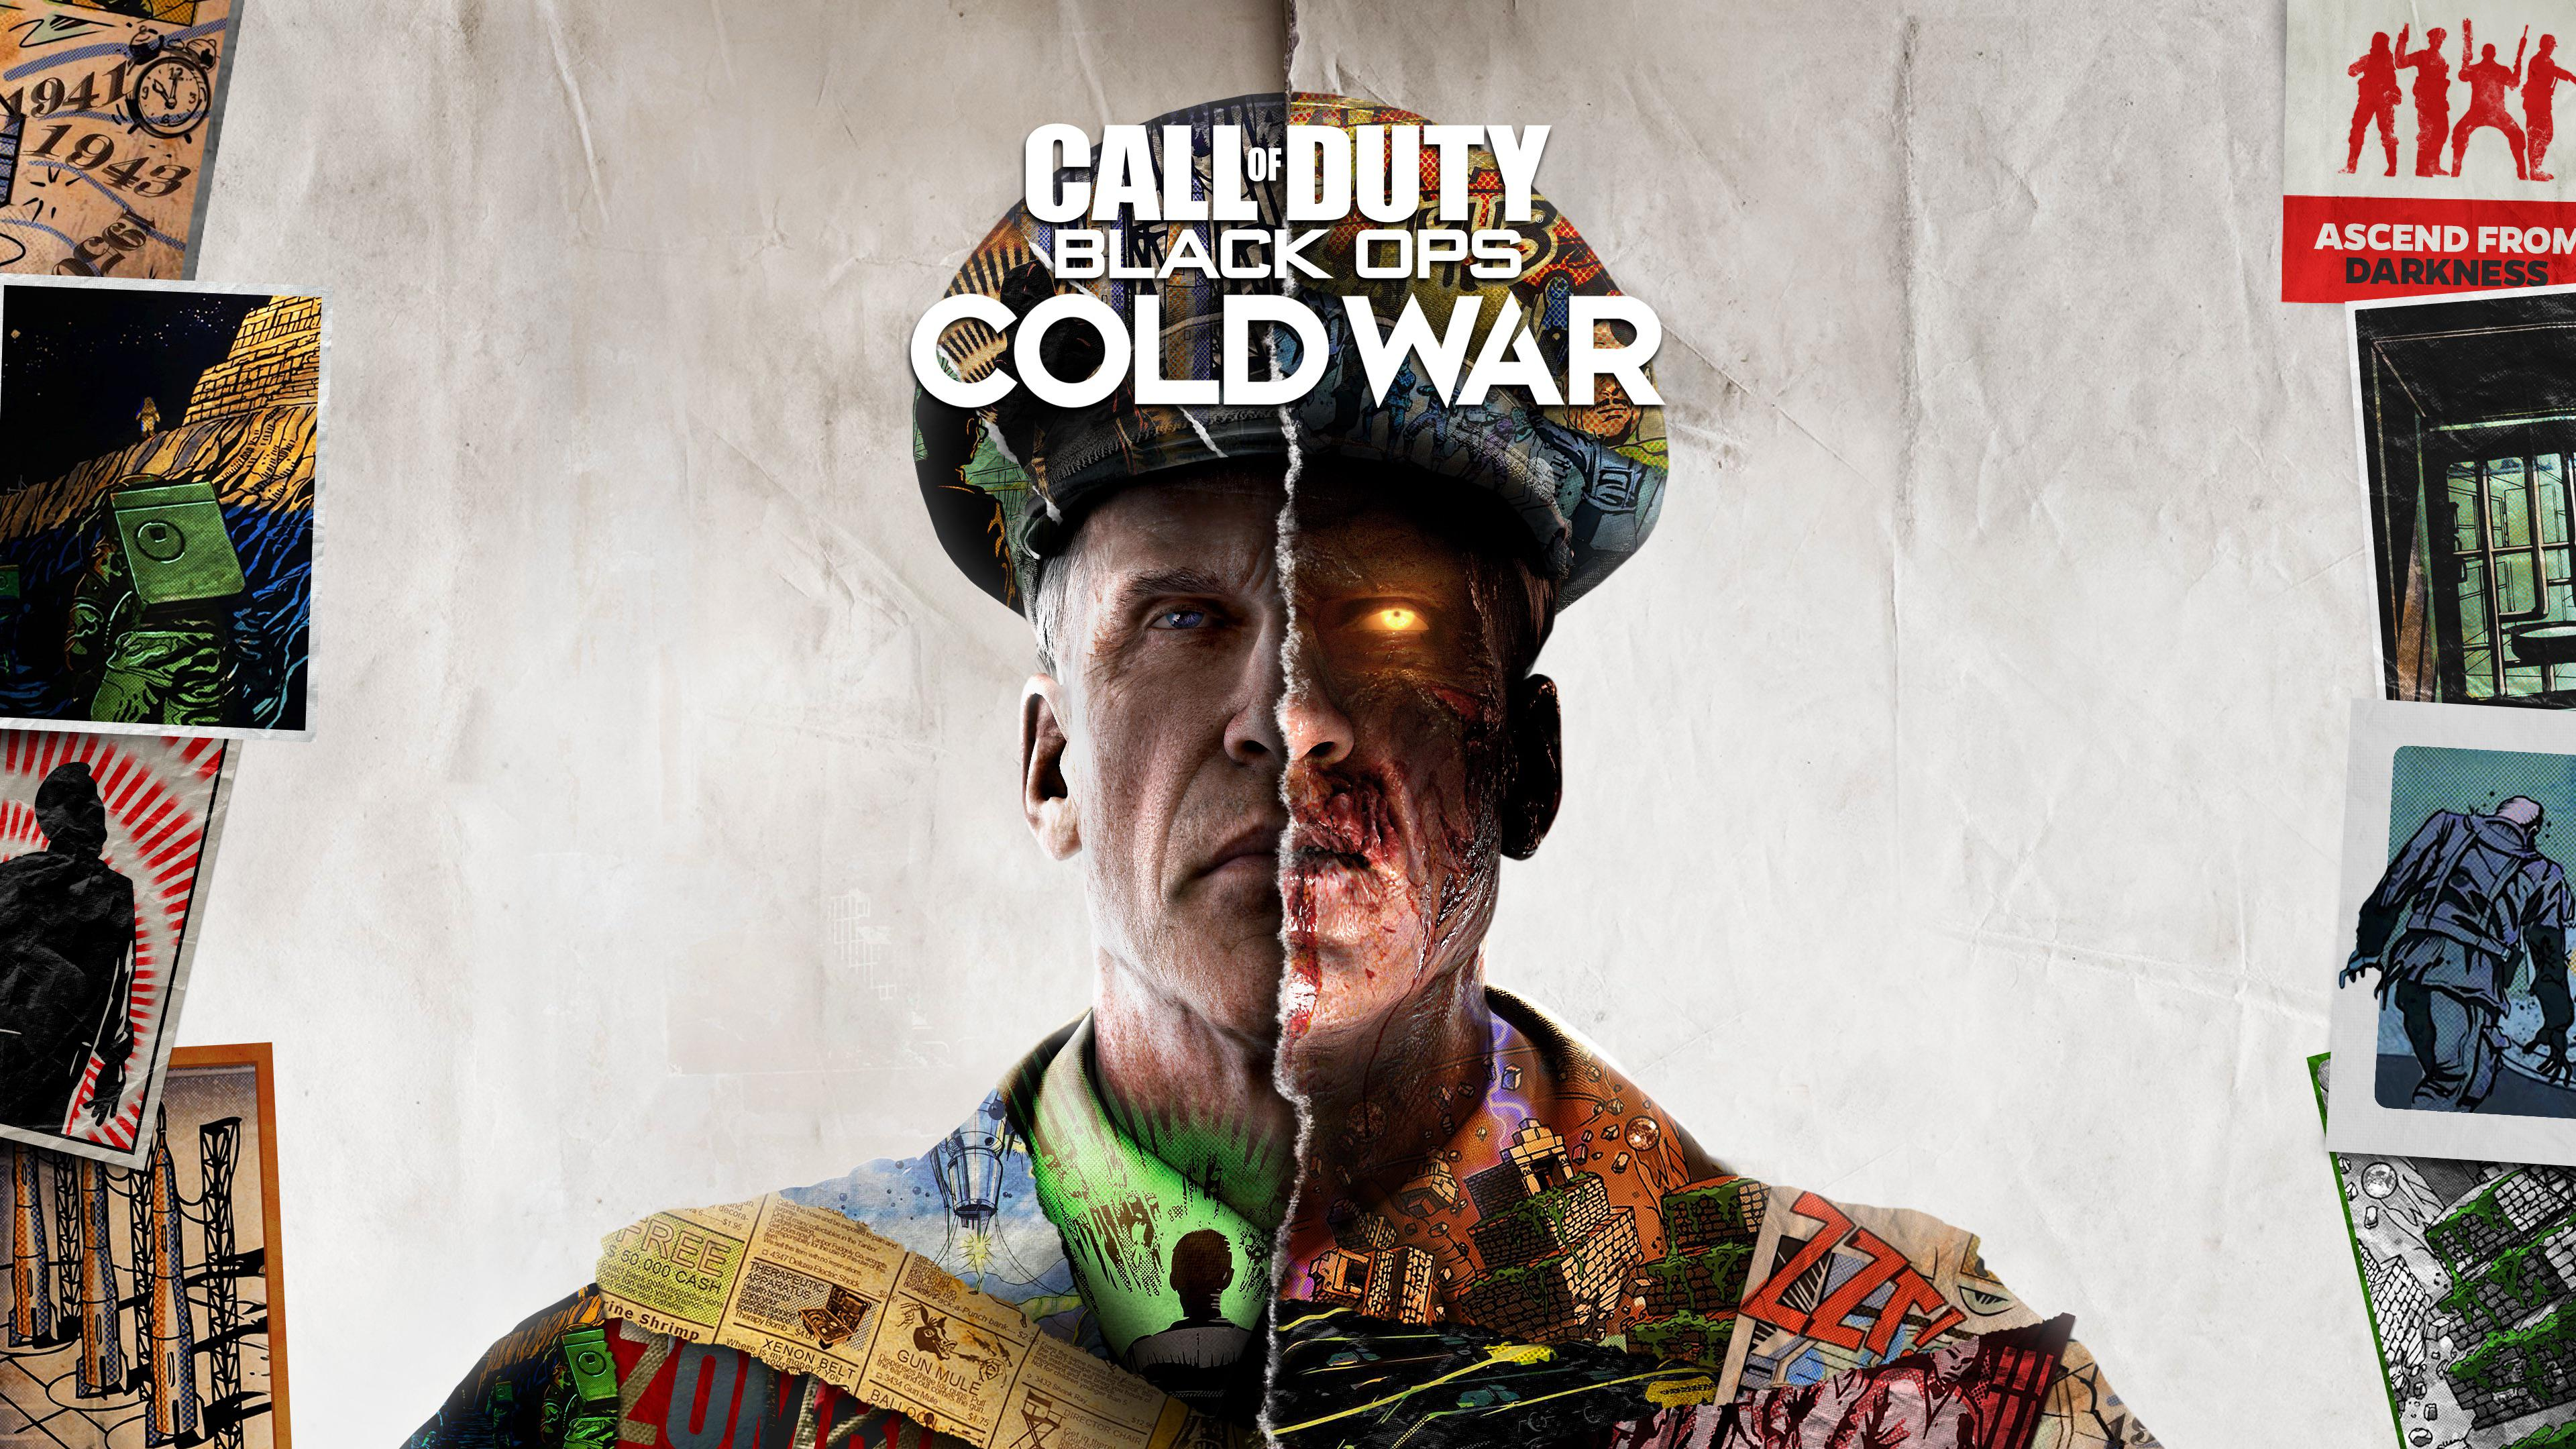 Call of Duty multiplayerfree week